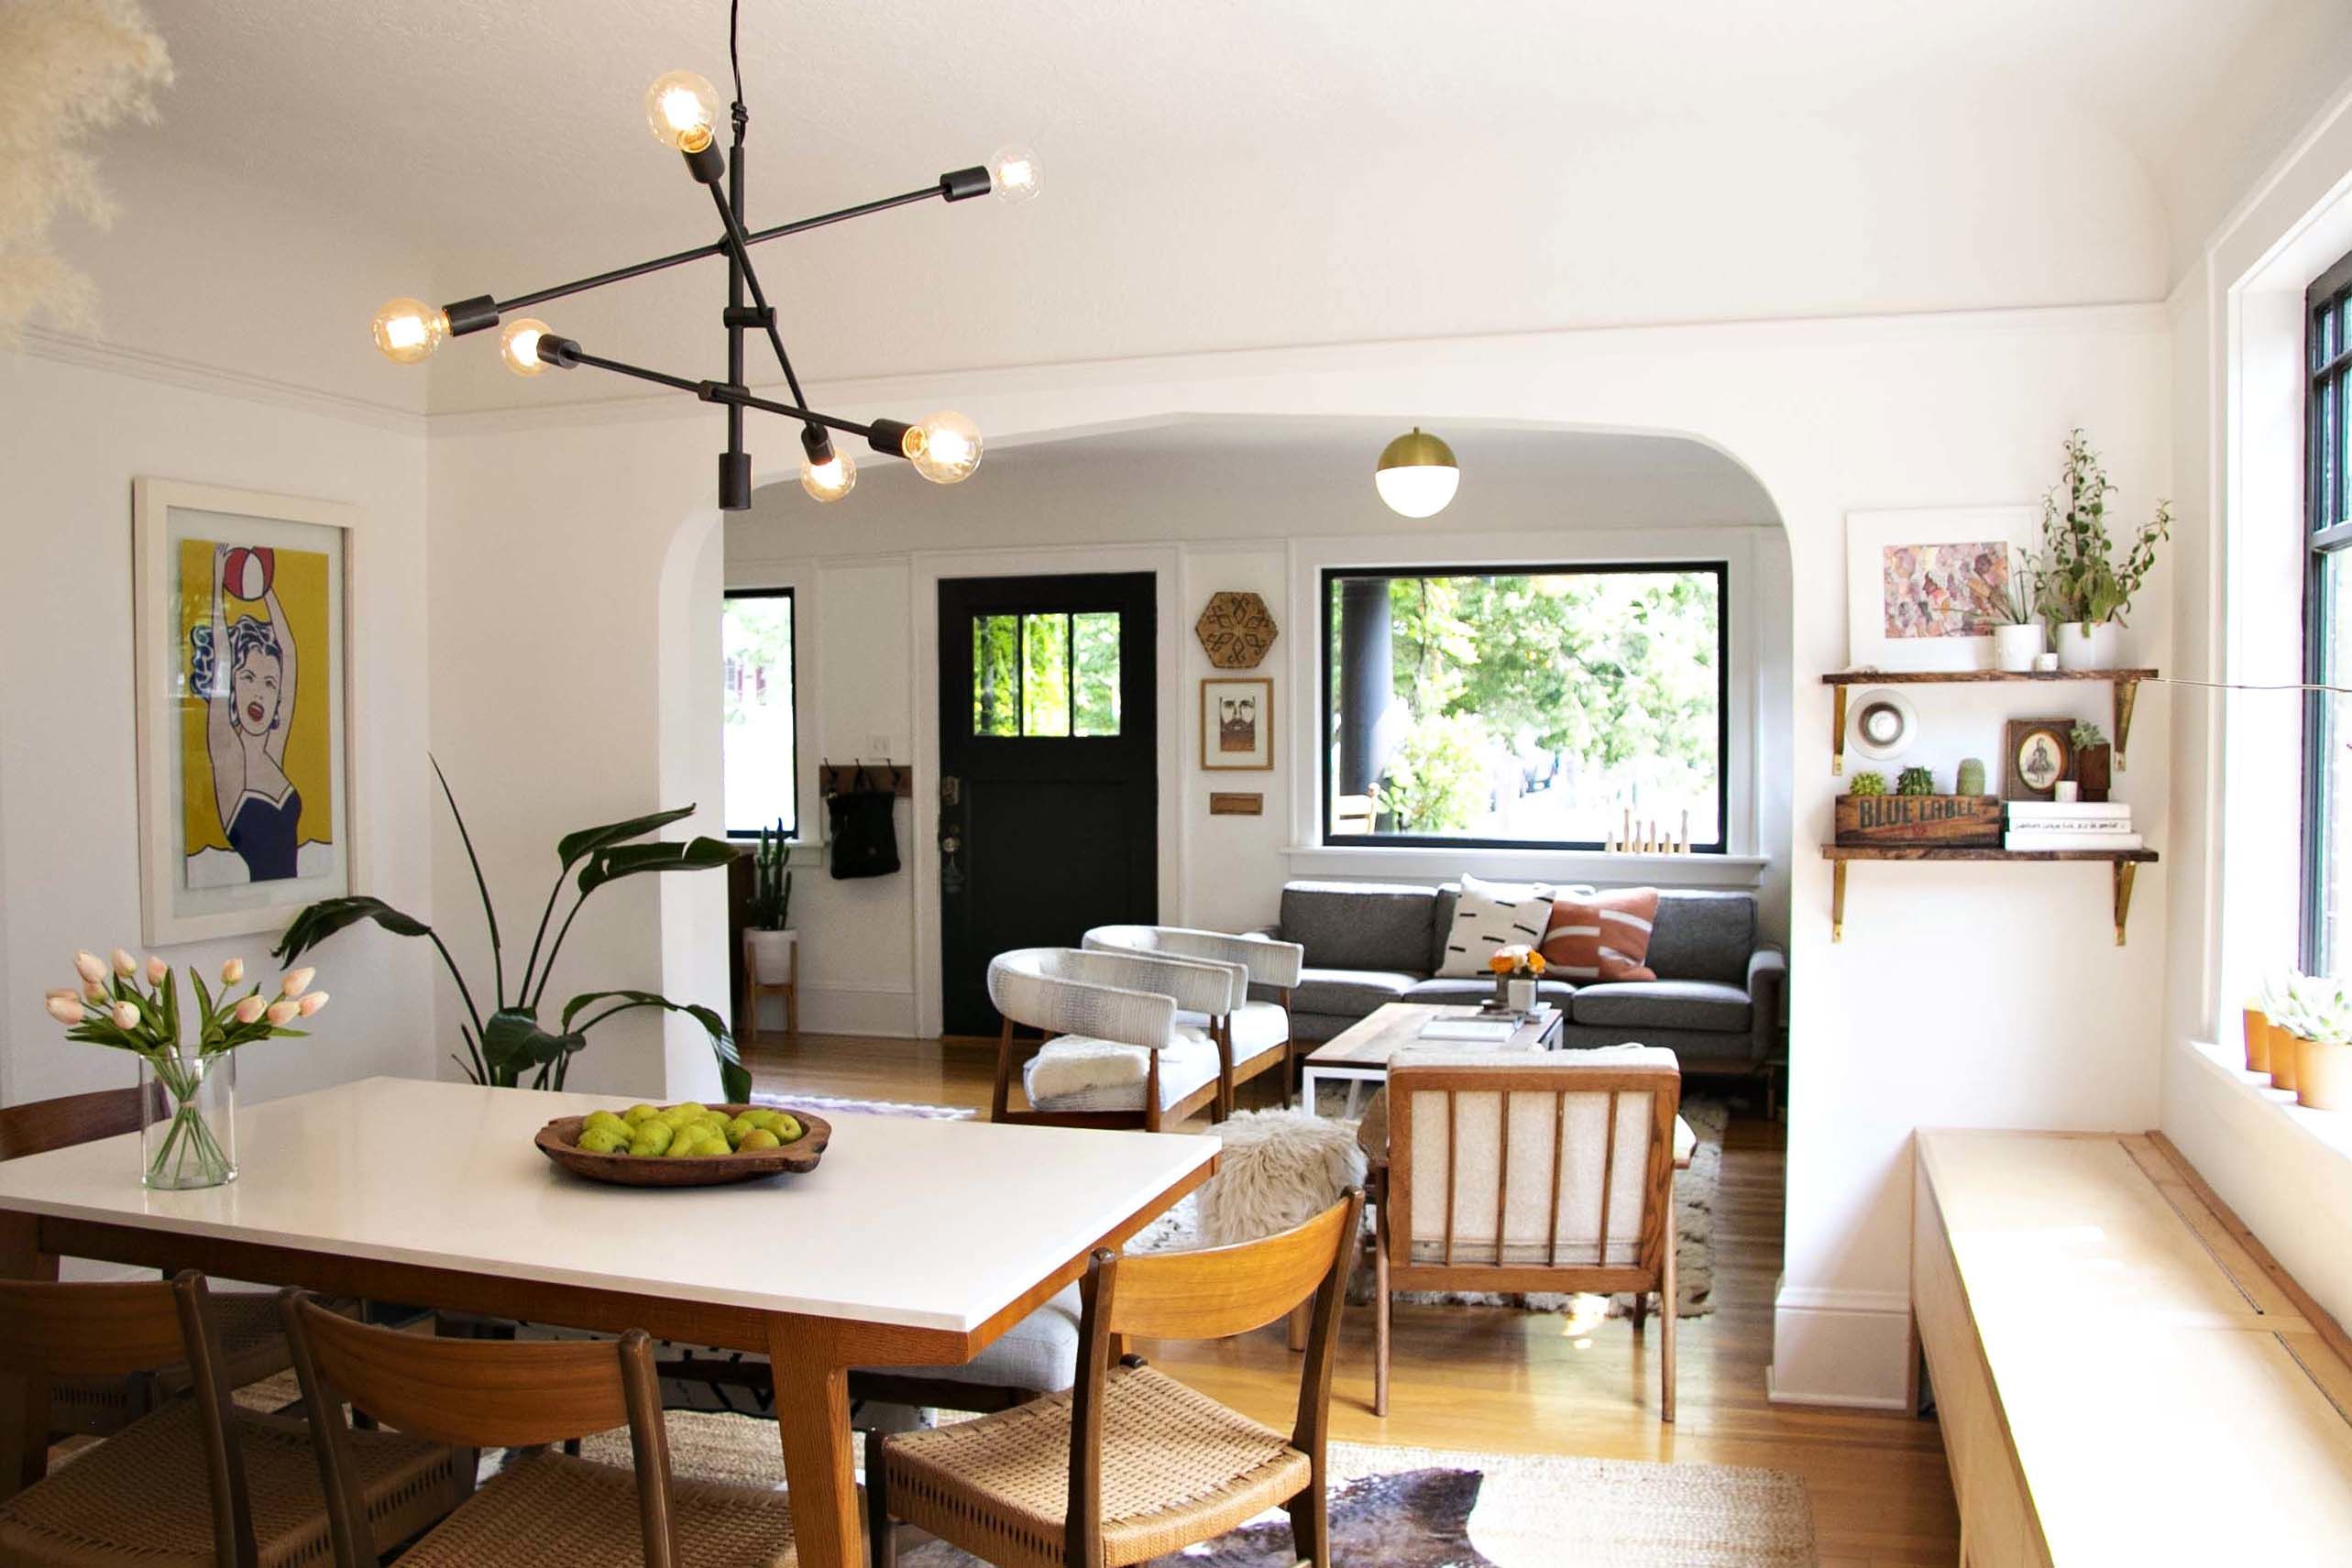 A Small Swedish Bungalow In Portland Is Diyed And Adorable Home Home Decor Natural Home Decor Bungalow dining room decorating